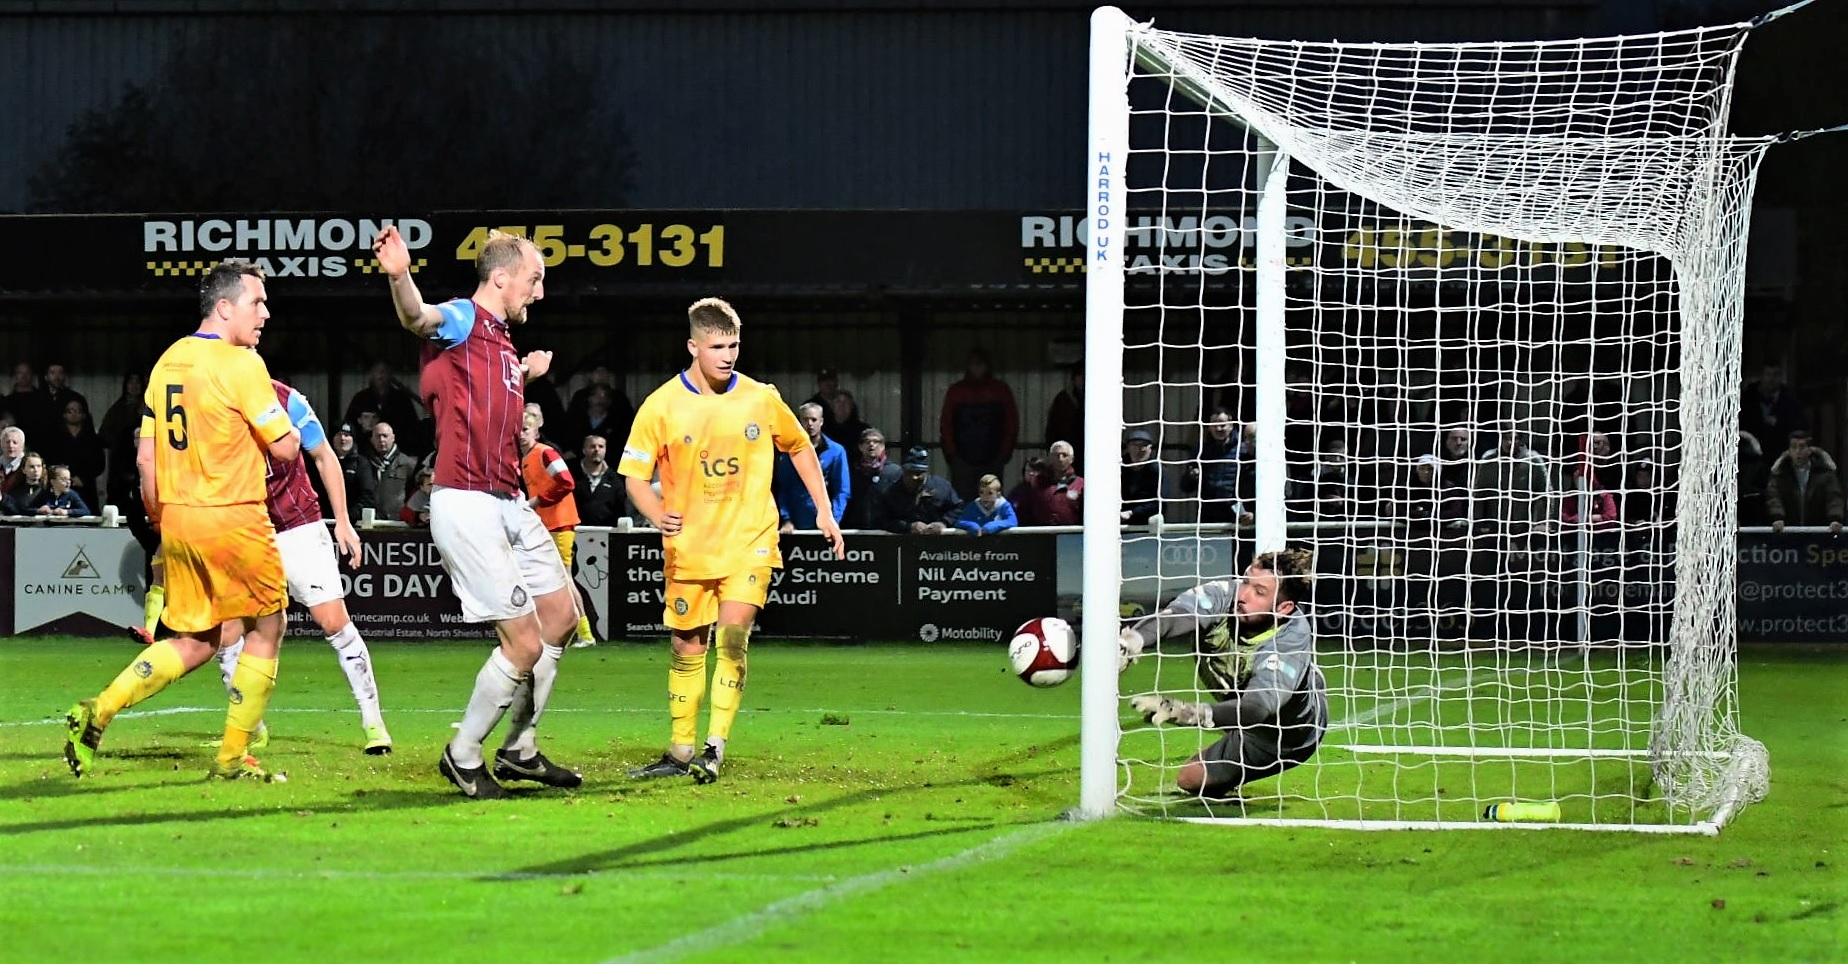 South Shields 0-1 Lancaster City: Mariners undone by second half Norris goal